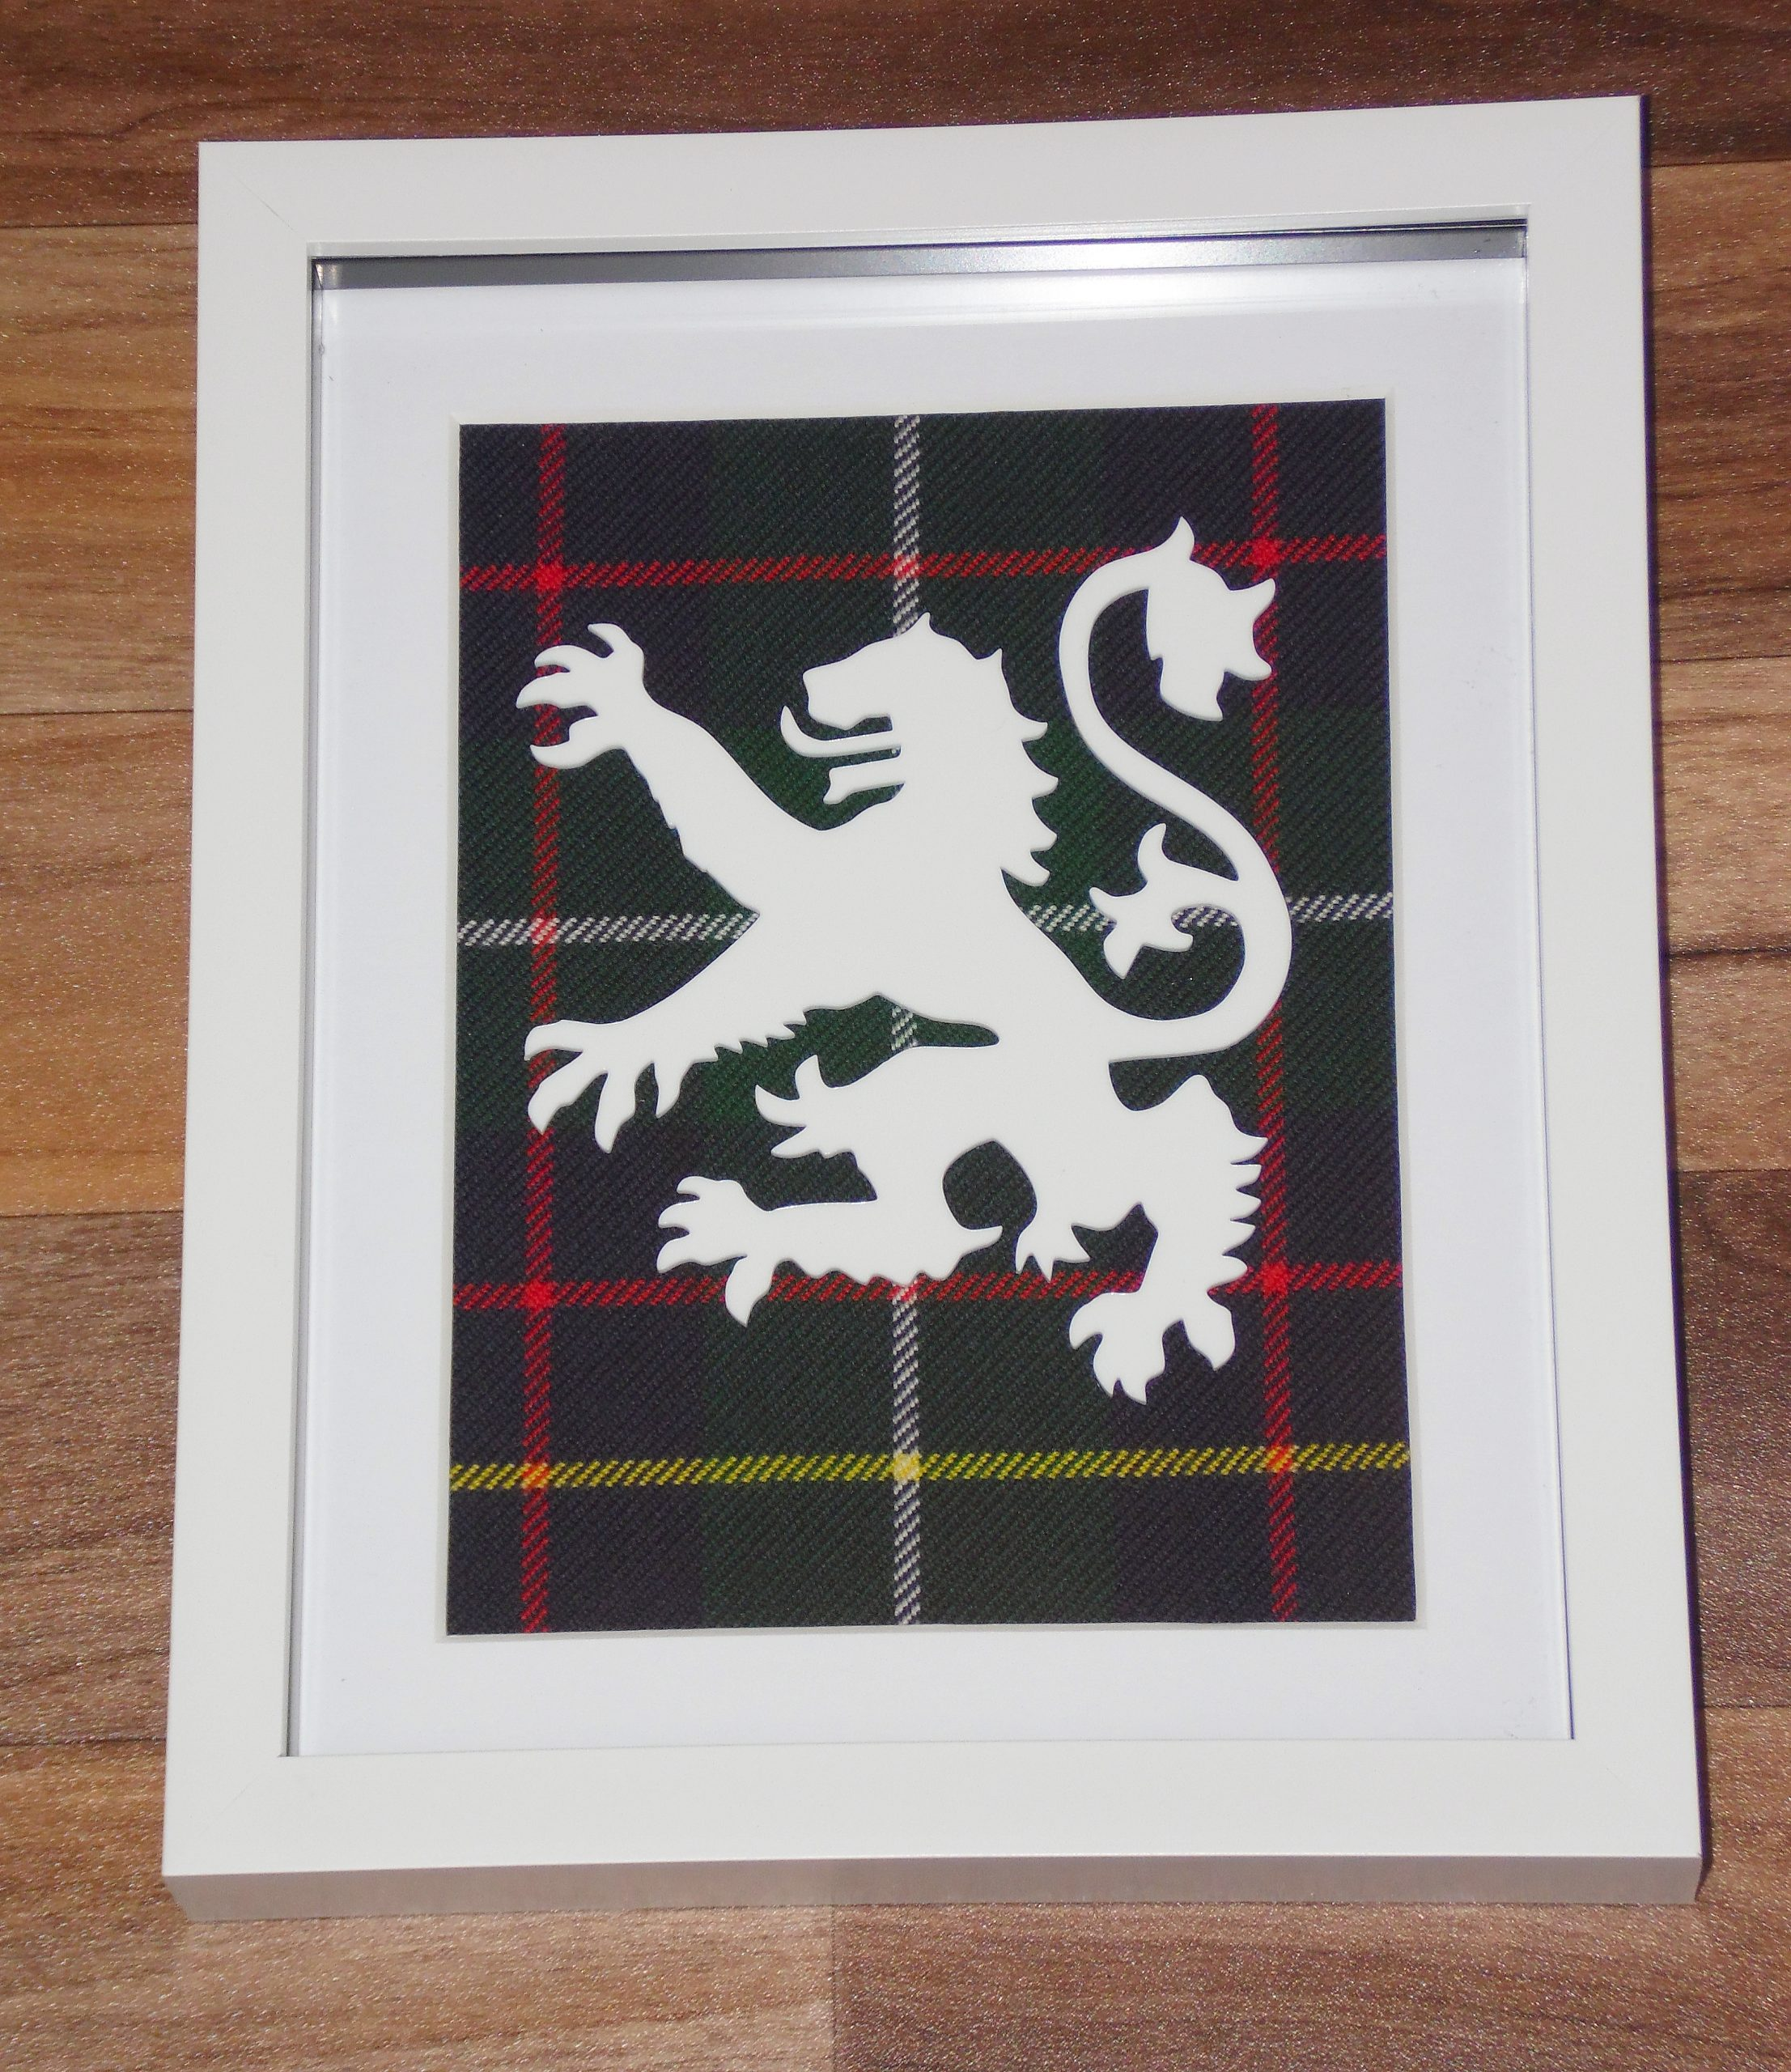 Lion Rampant/Large Tartan background